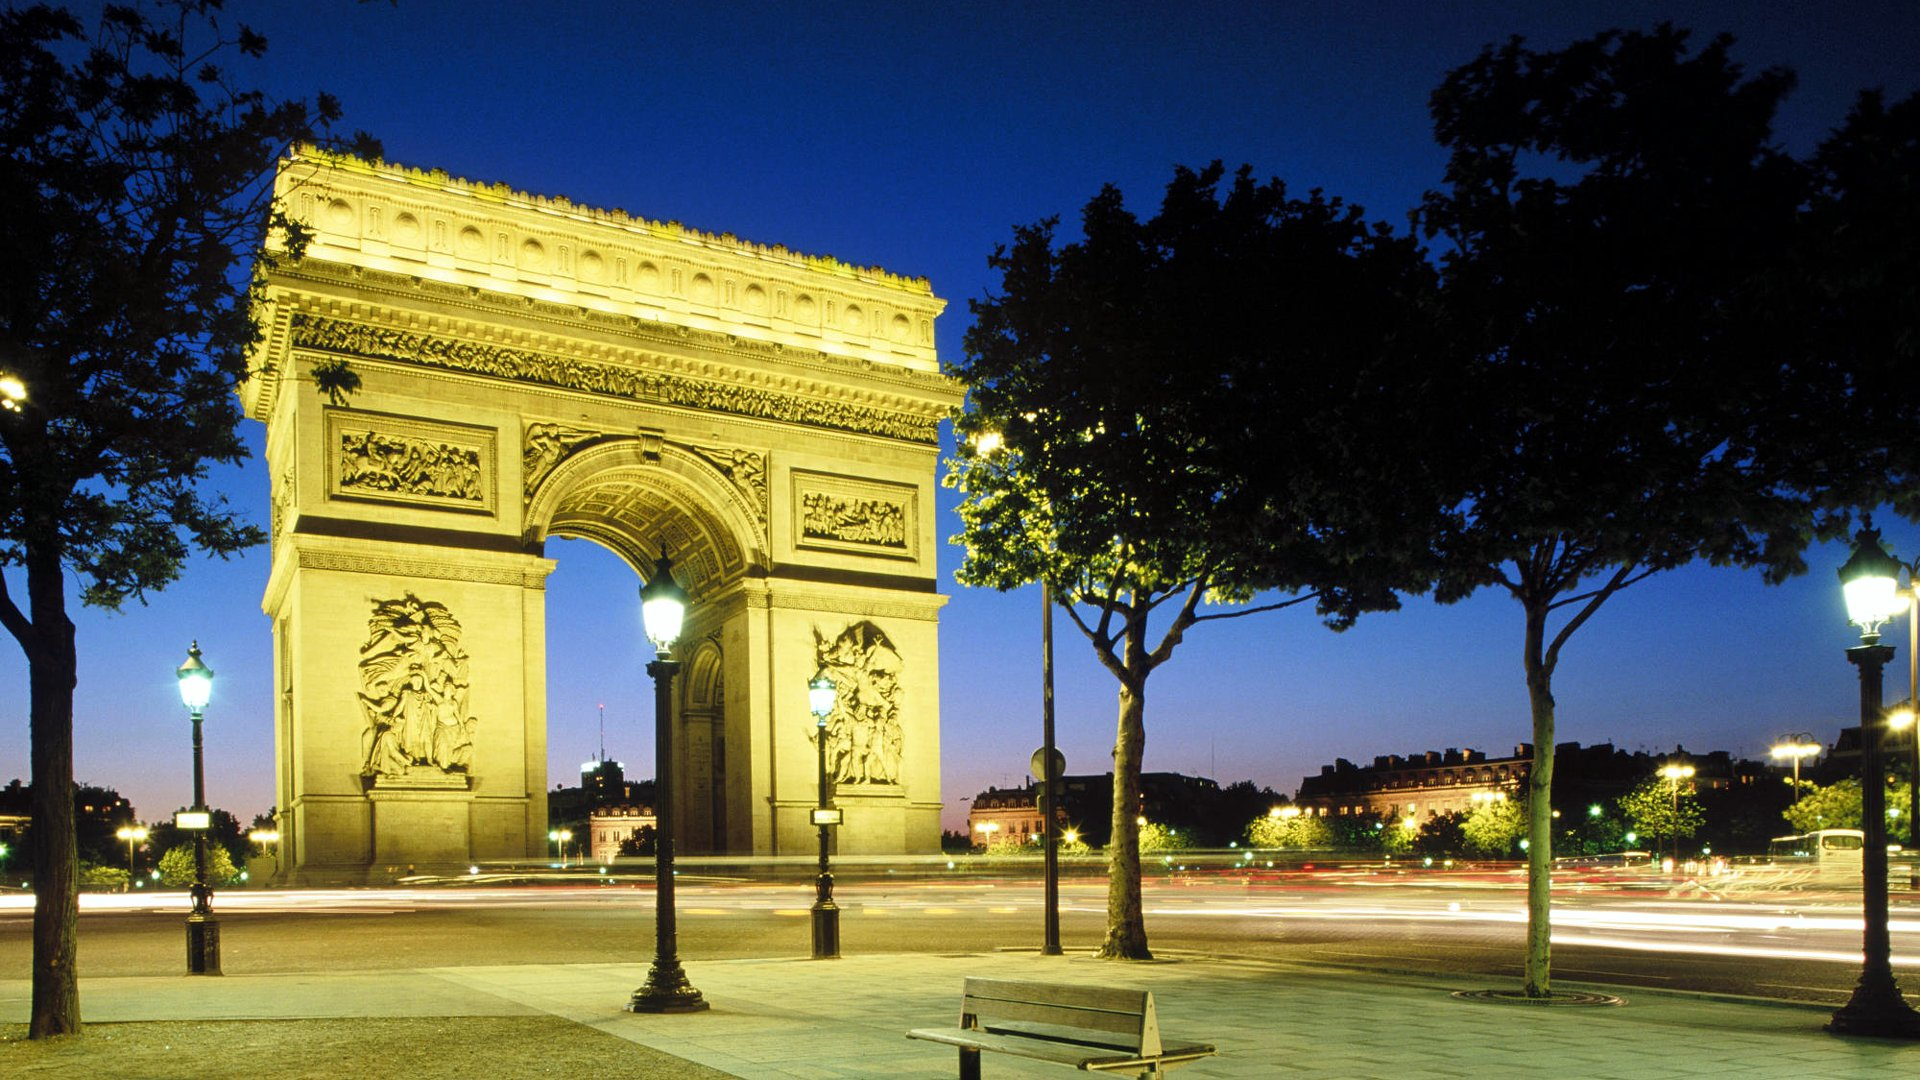 2010 cultural geography tourist attractions landmarks and